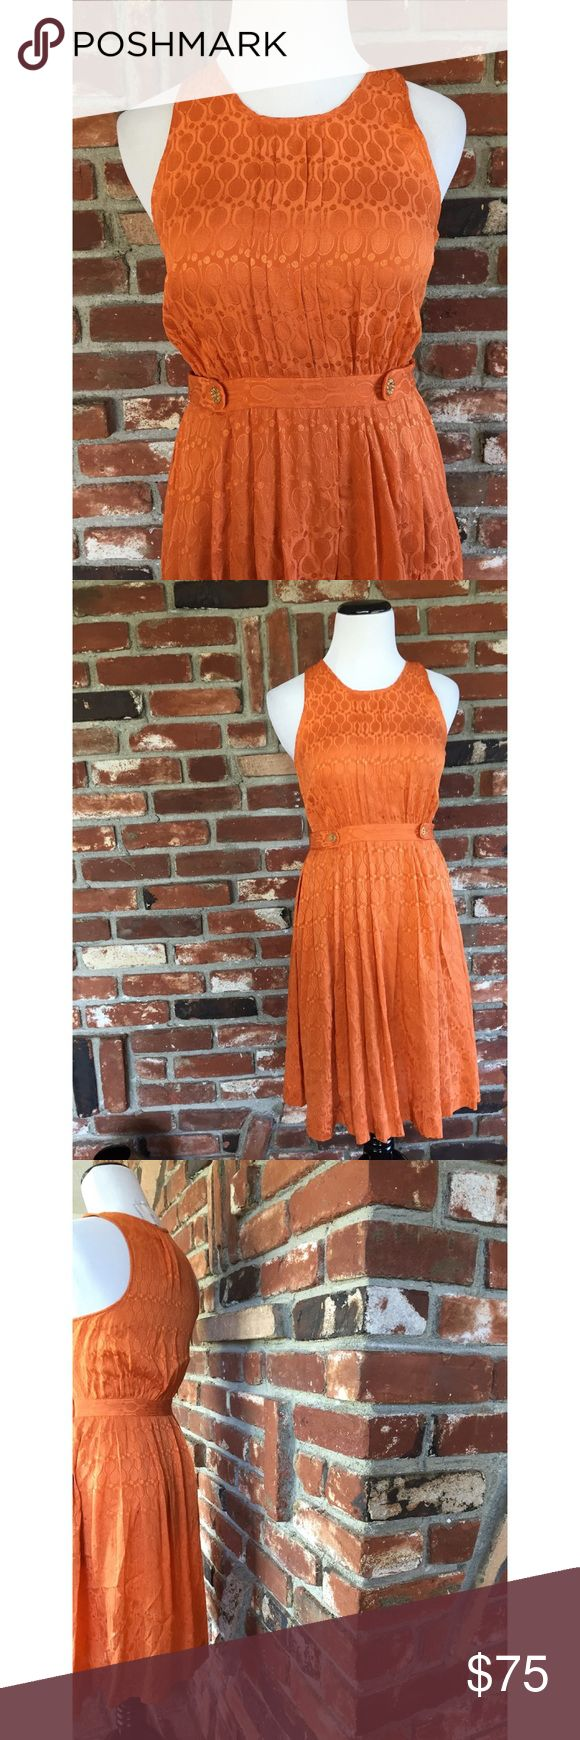 """Anthropologie Grand Slam Tennis Racket Dress 2 This is a gorgeous grand slam Orange tennis racket print dress made for Anthropologie size 2P. 100% silk. Dry clean. Side hidden zipper. Gold side waist buttons. Measured laying flat: 34""""/ waist 13""""/ hips 22""""/ dress length size 36.5."""" Gently used and in great condition. No visible flaws. 071917 Anthropologie Dresses Midi"""